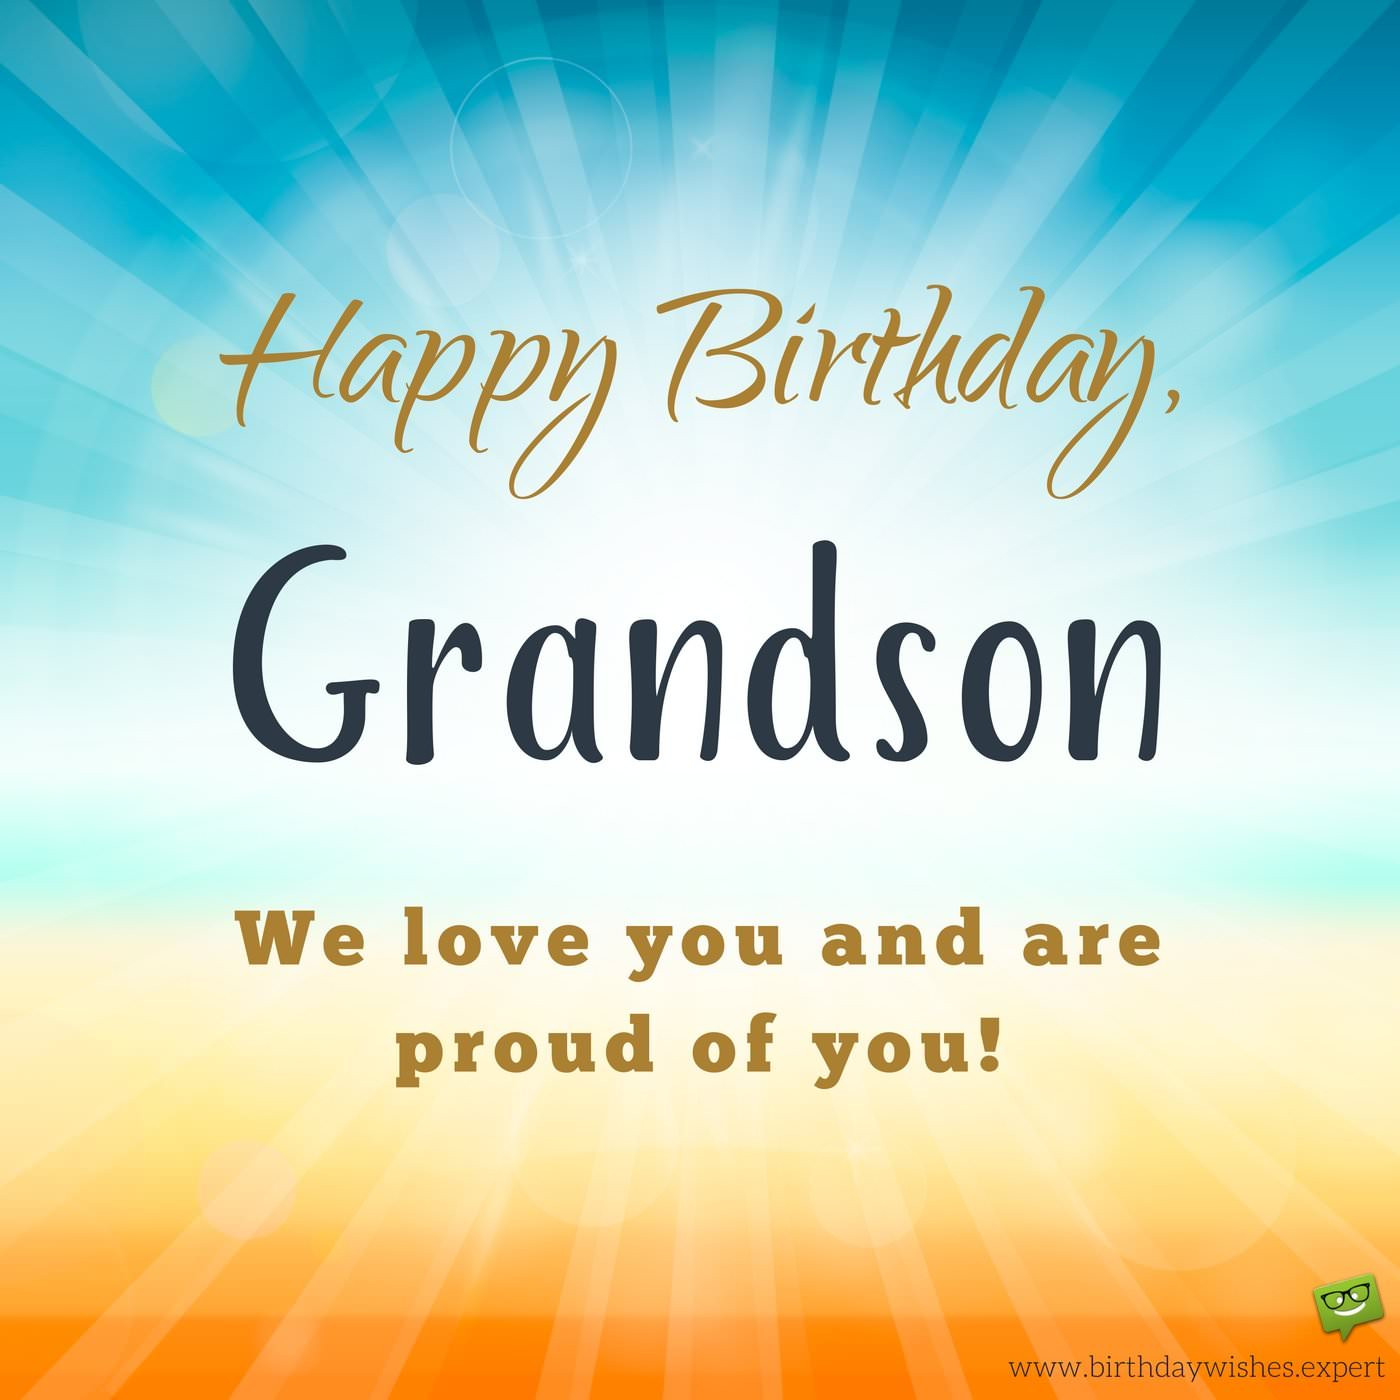 Best ideas about Birthday Wishes For My Grandson . Save or Pin From your Grandma & Grandpa Birthday Wishes for my Grandson Now.